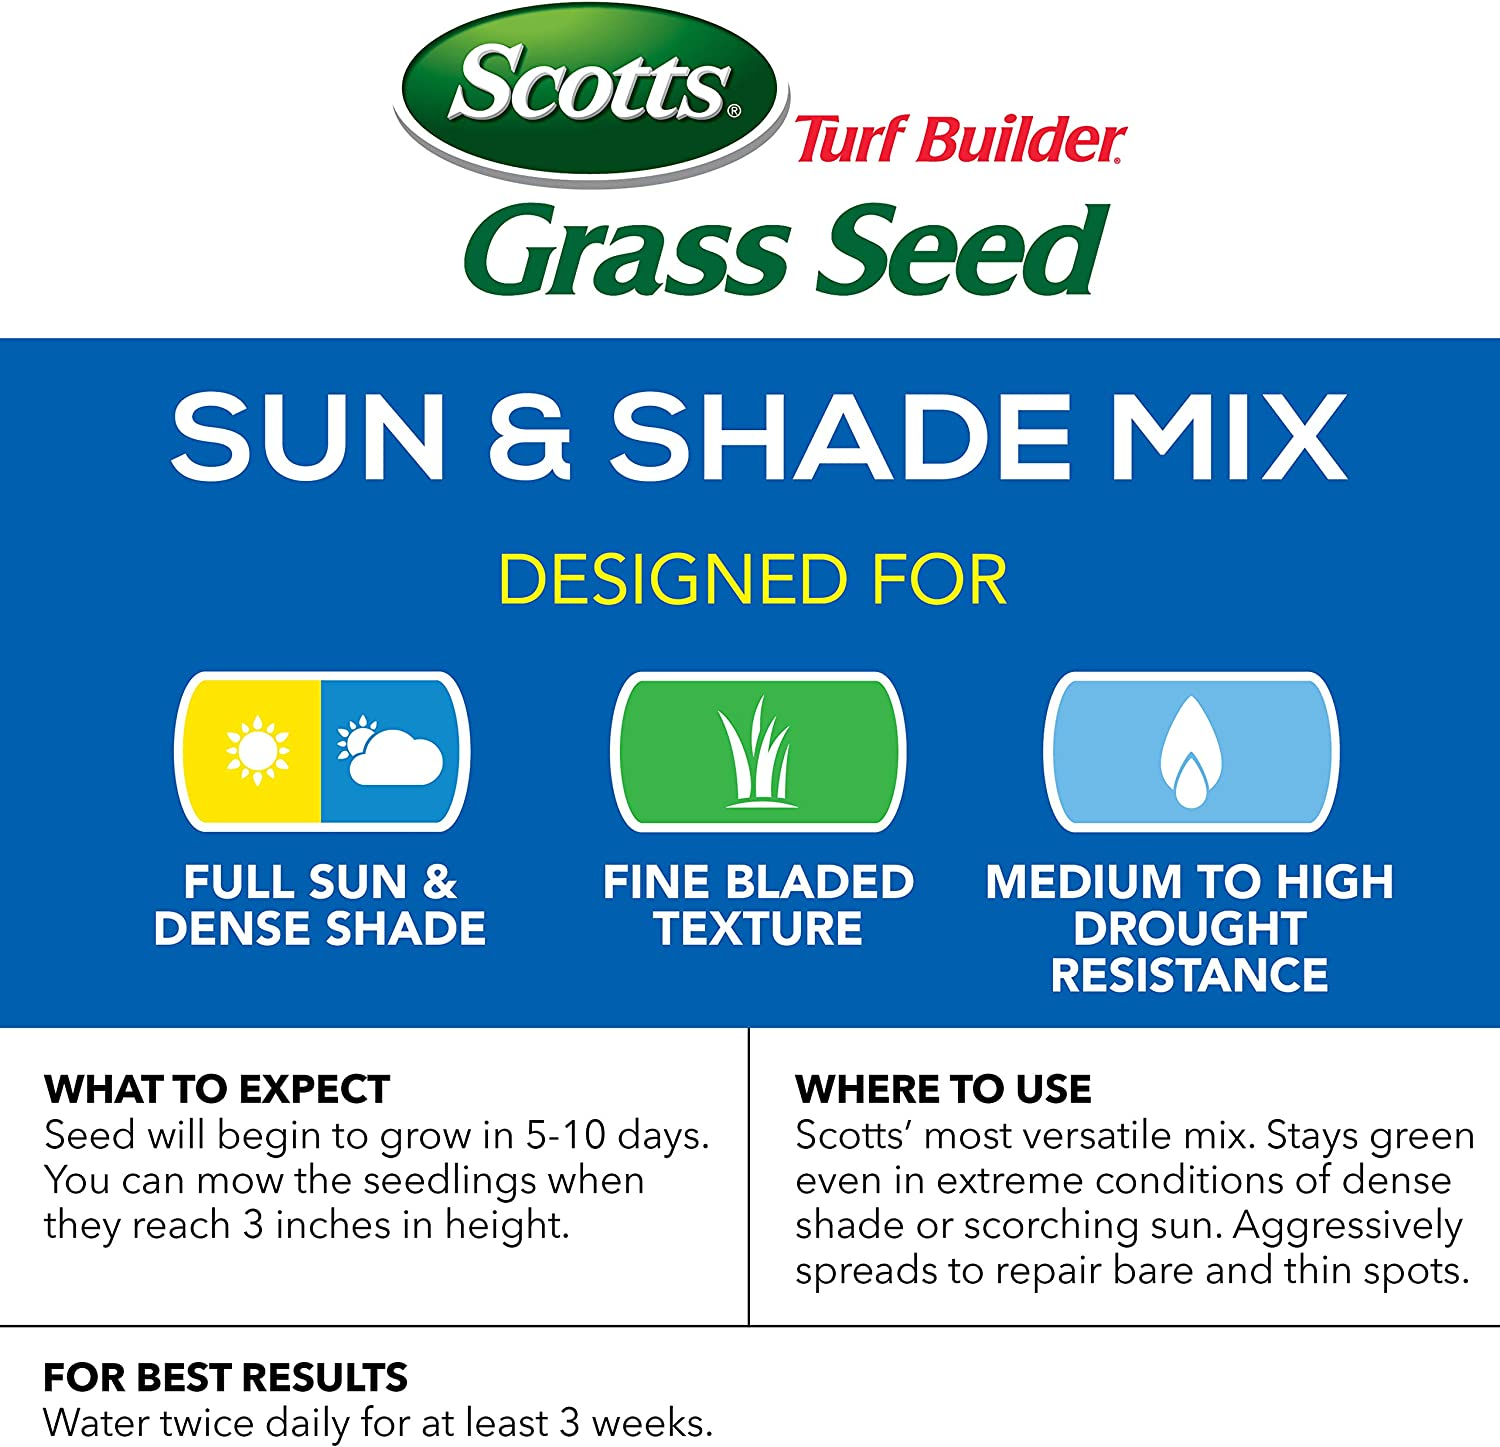 Scotts Turf Builder Grass Seed Sun and Shade Mix, 3 lb. - Grows in Extreme Conditions Including Full Sun and Dense Shade - Seeds up to 1, 200 sq. ft. : Grass Plants : Garden & Outdoor